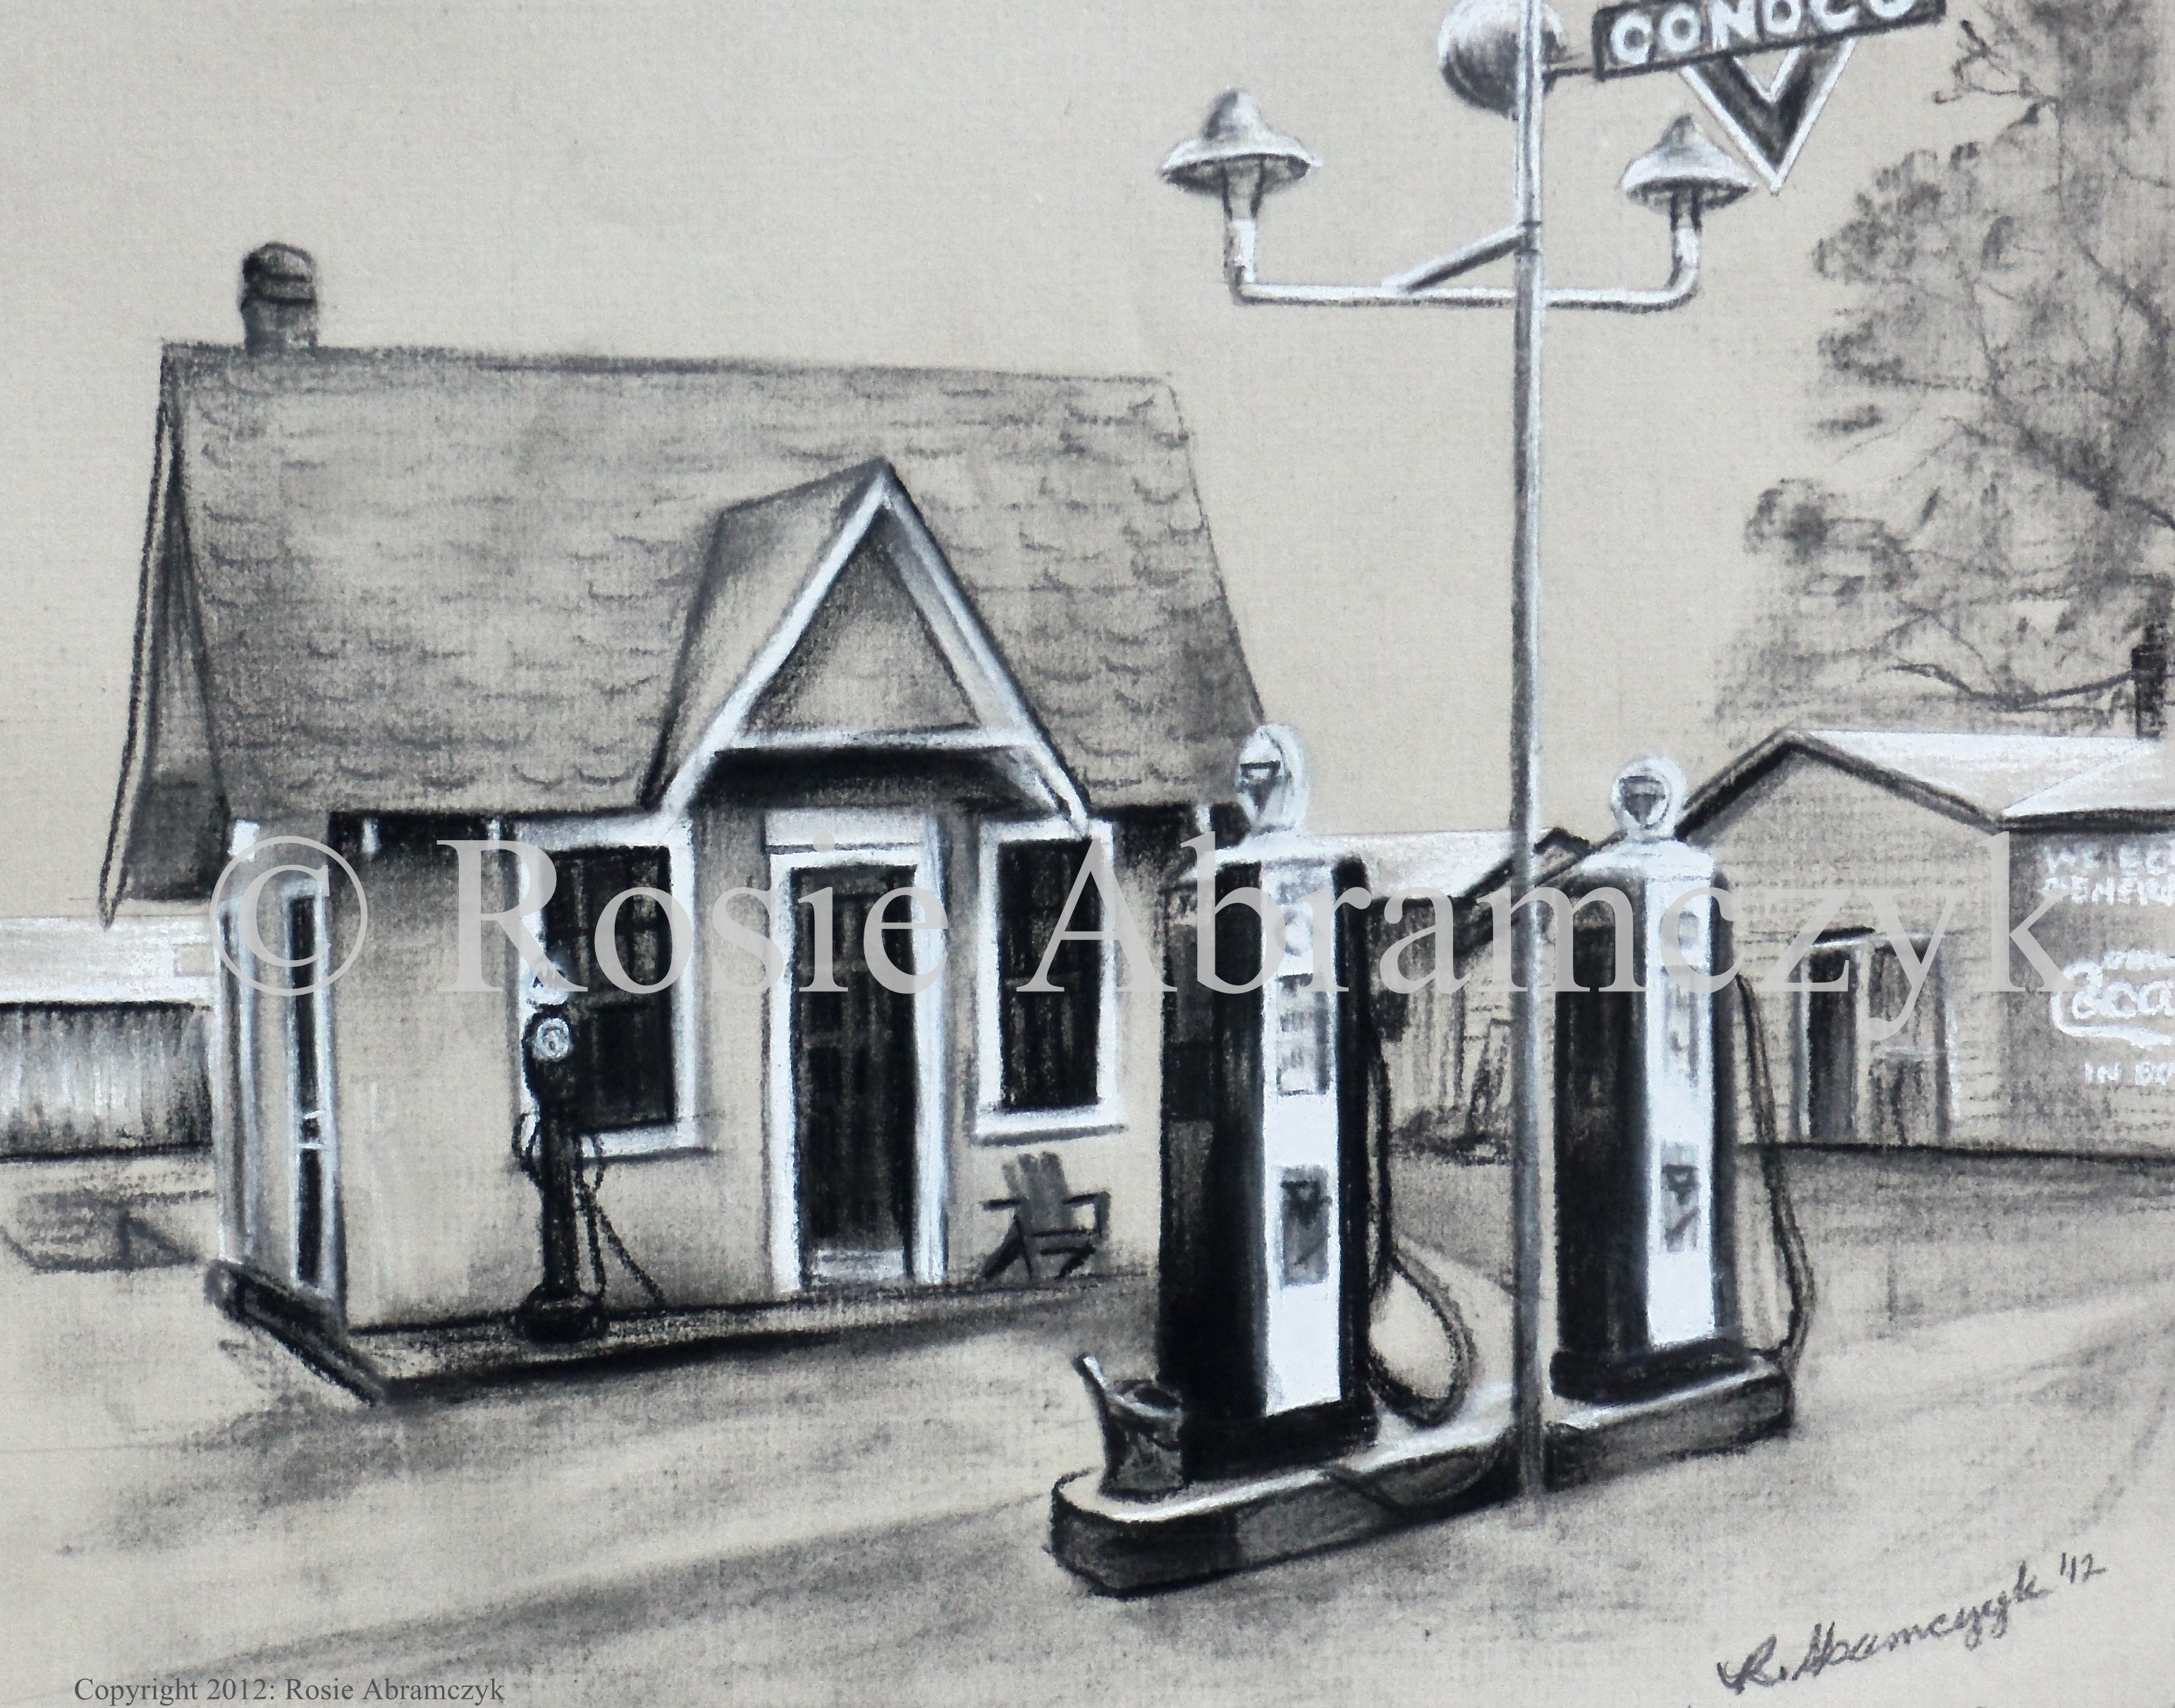 Conoco Station 1930s Marquand, by Rosie Abramczyk, Charcoal & White Pastel, 2011